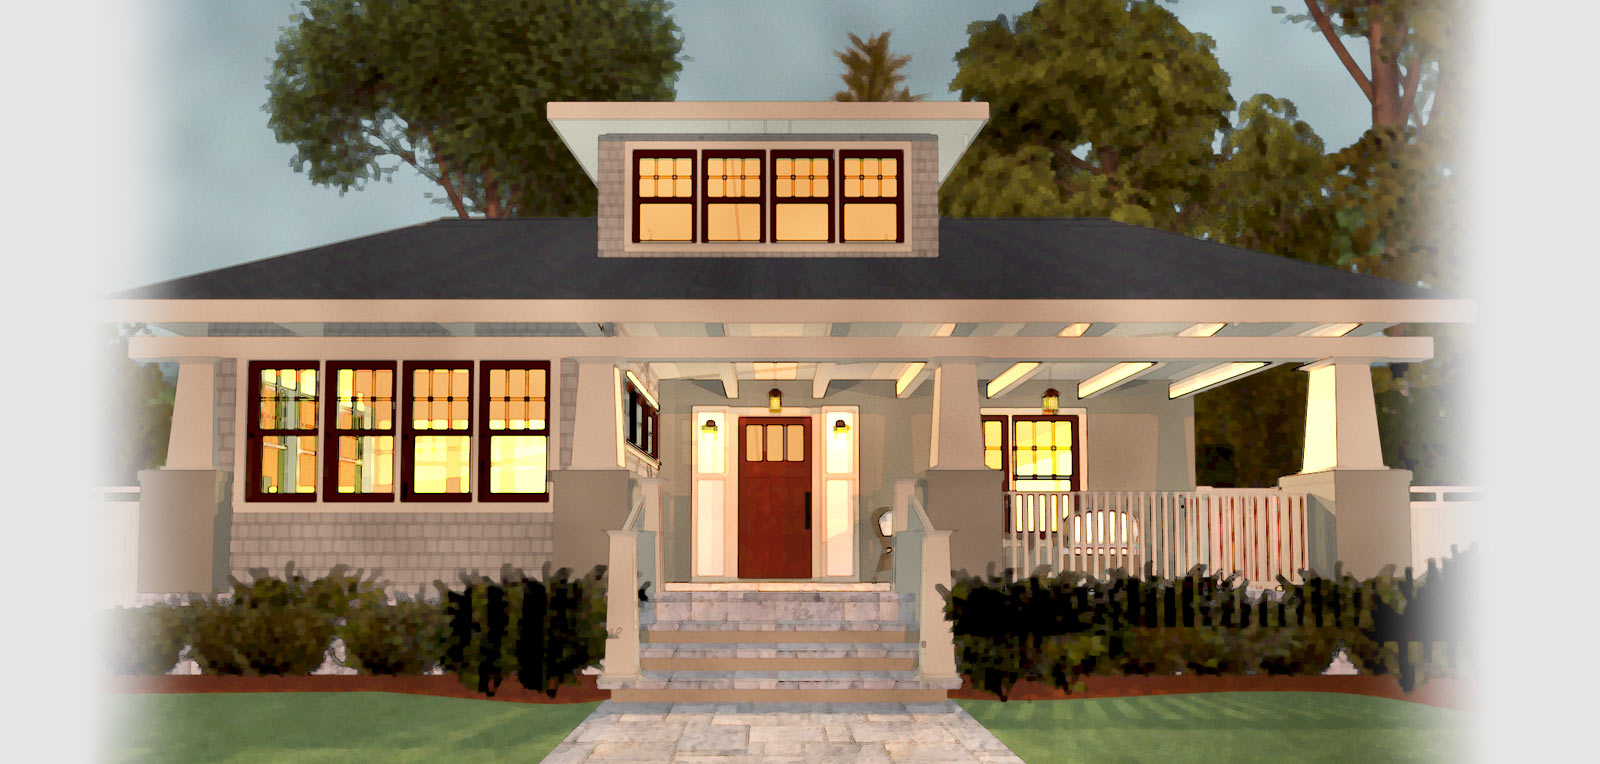 Home designer software for home design remodeling projects 3d model house design